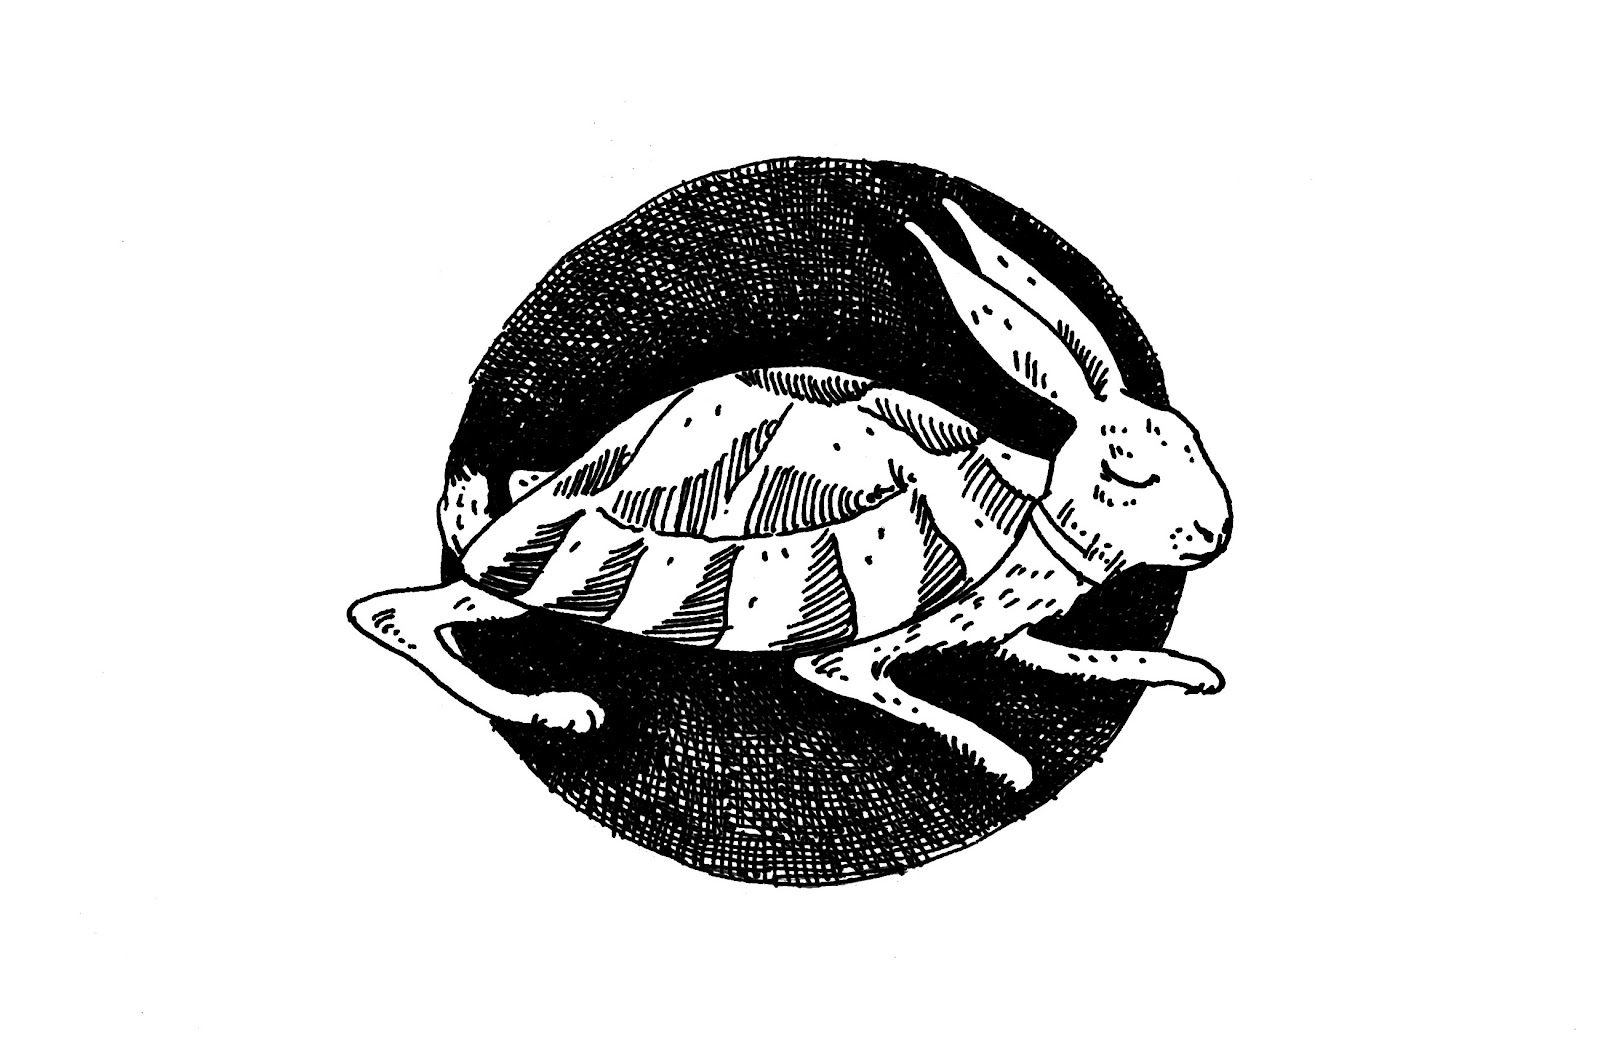 Illustration of a Hare.